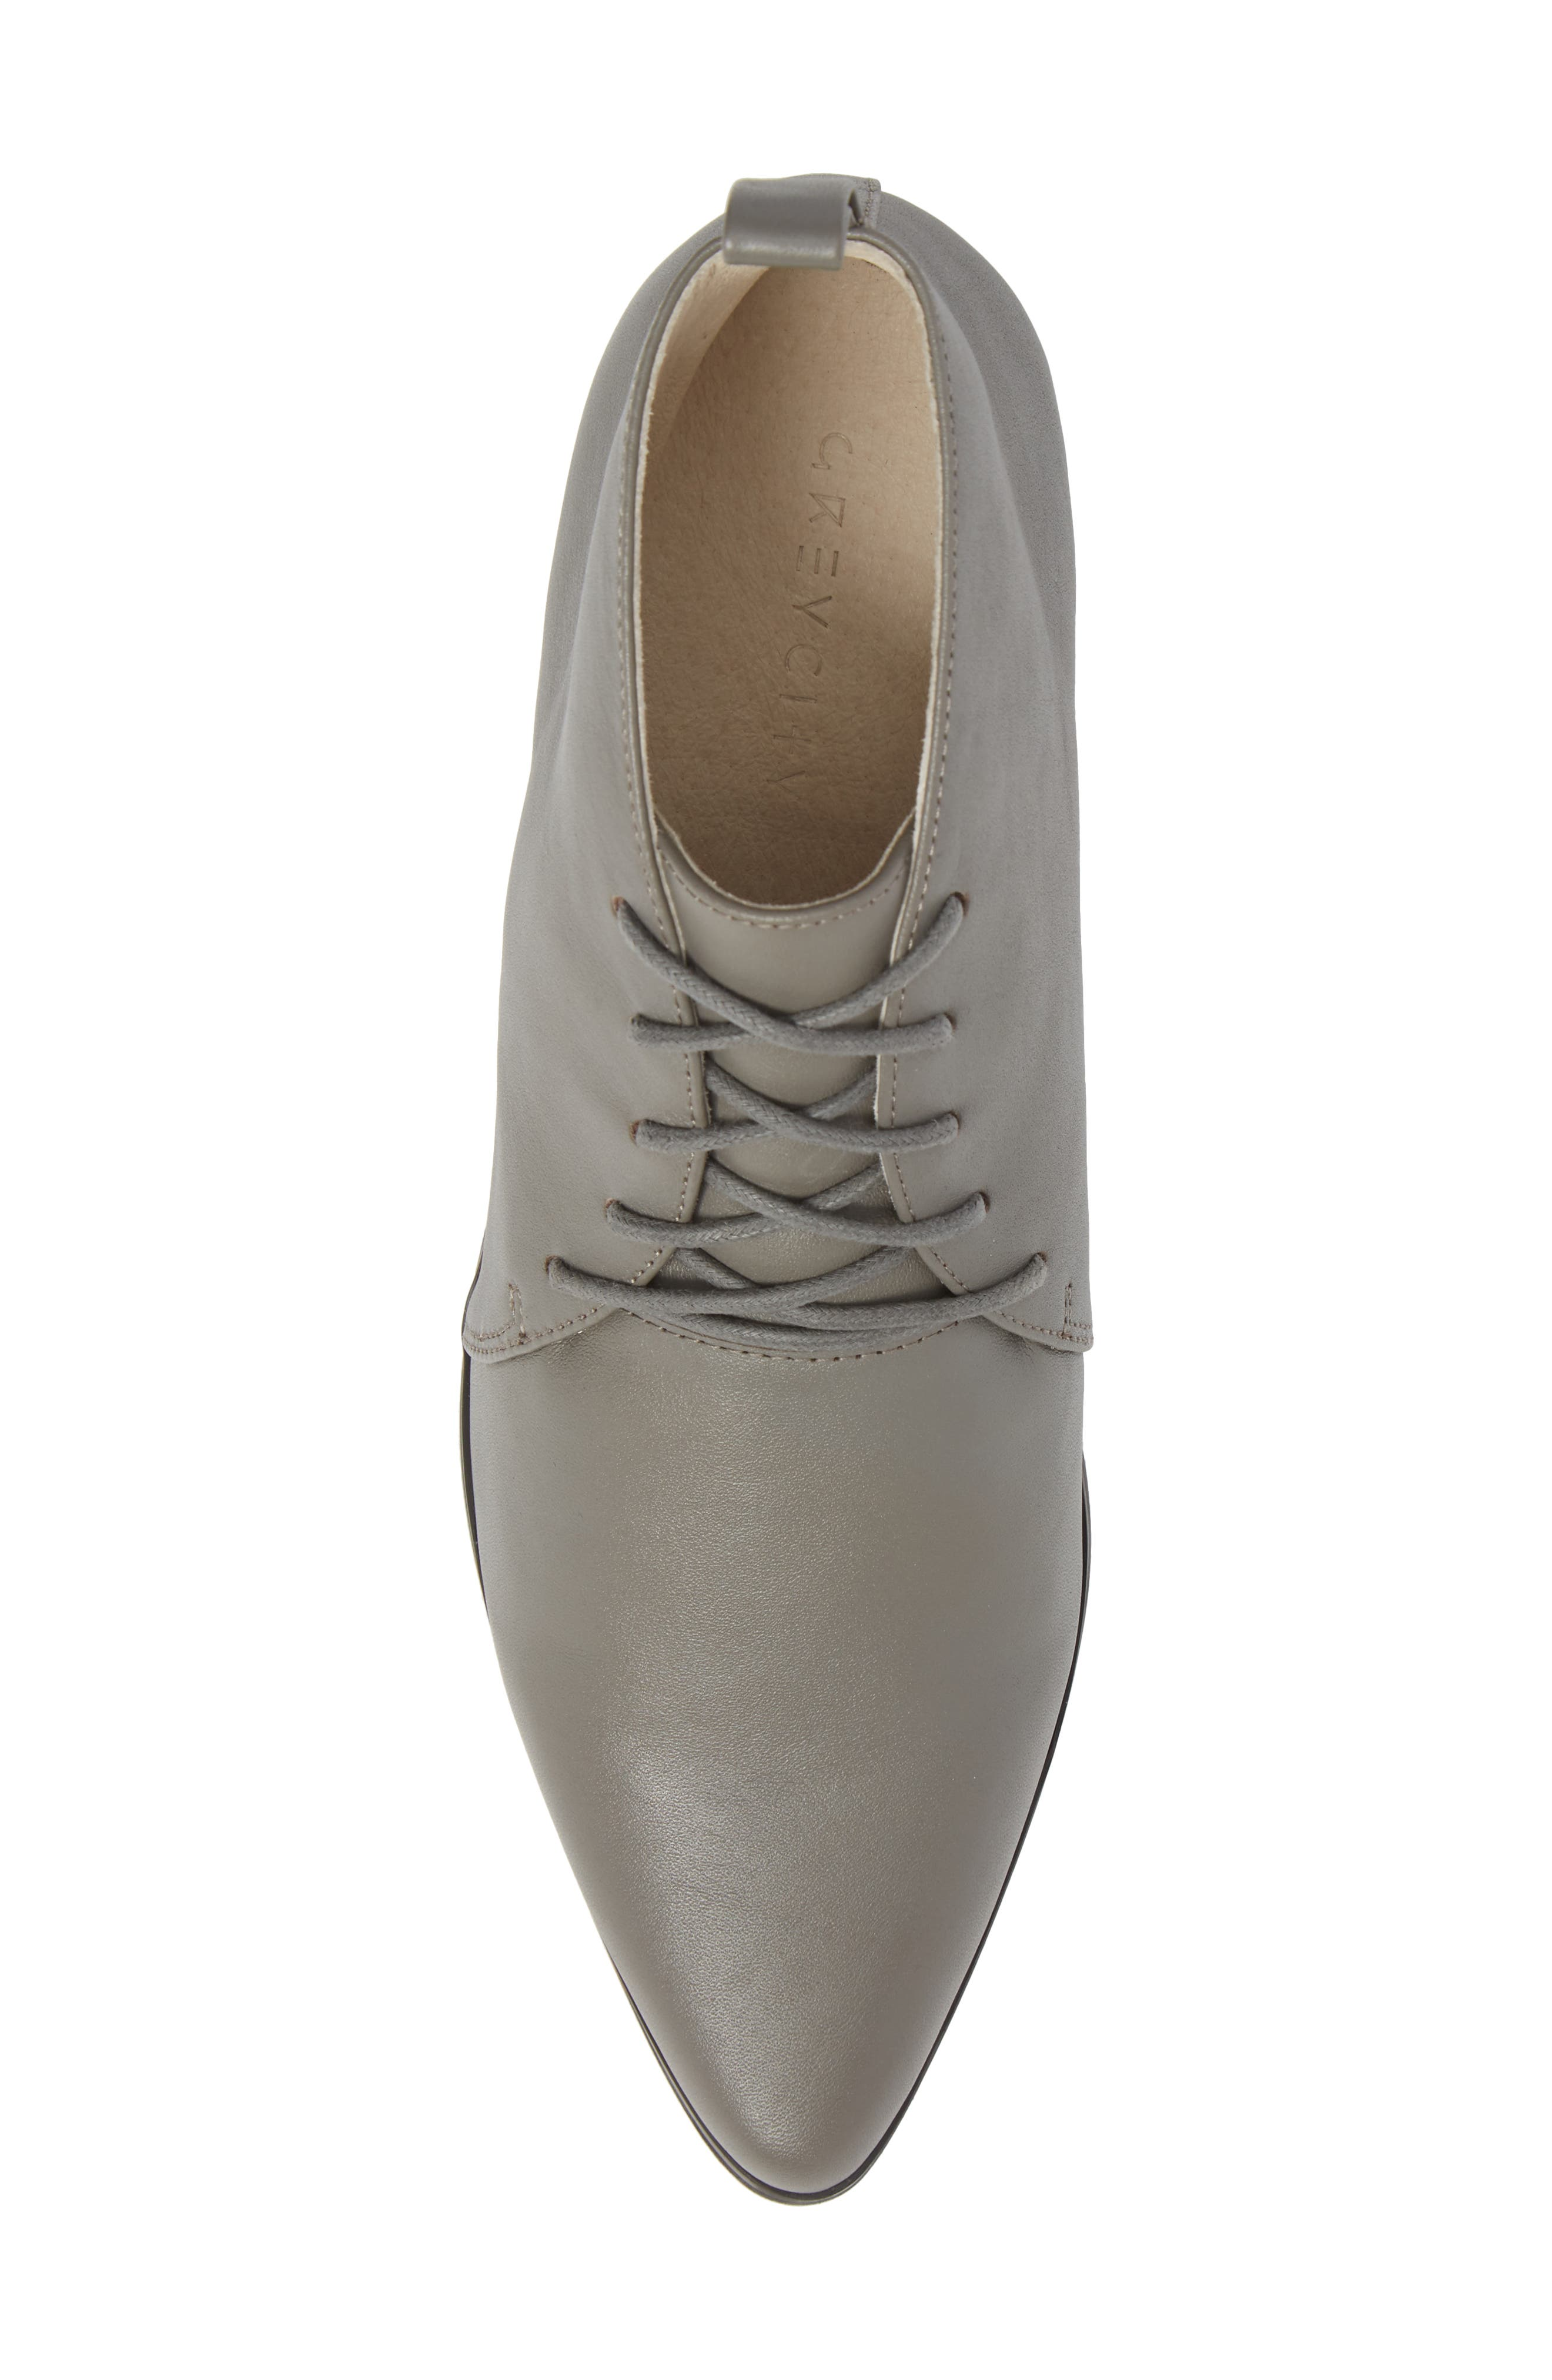 Waverly Lace-Up Bootie,                             Alternate thumbnail 5, color,                             035